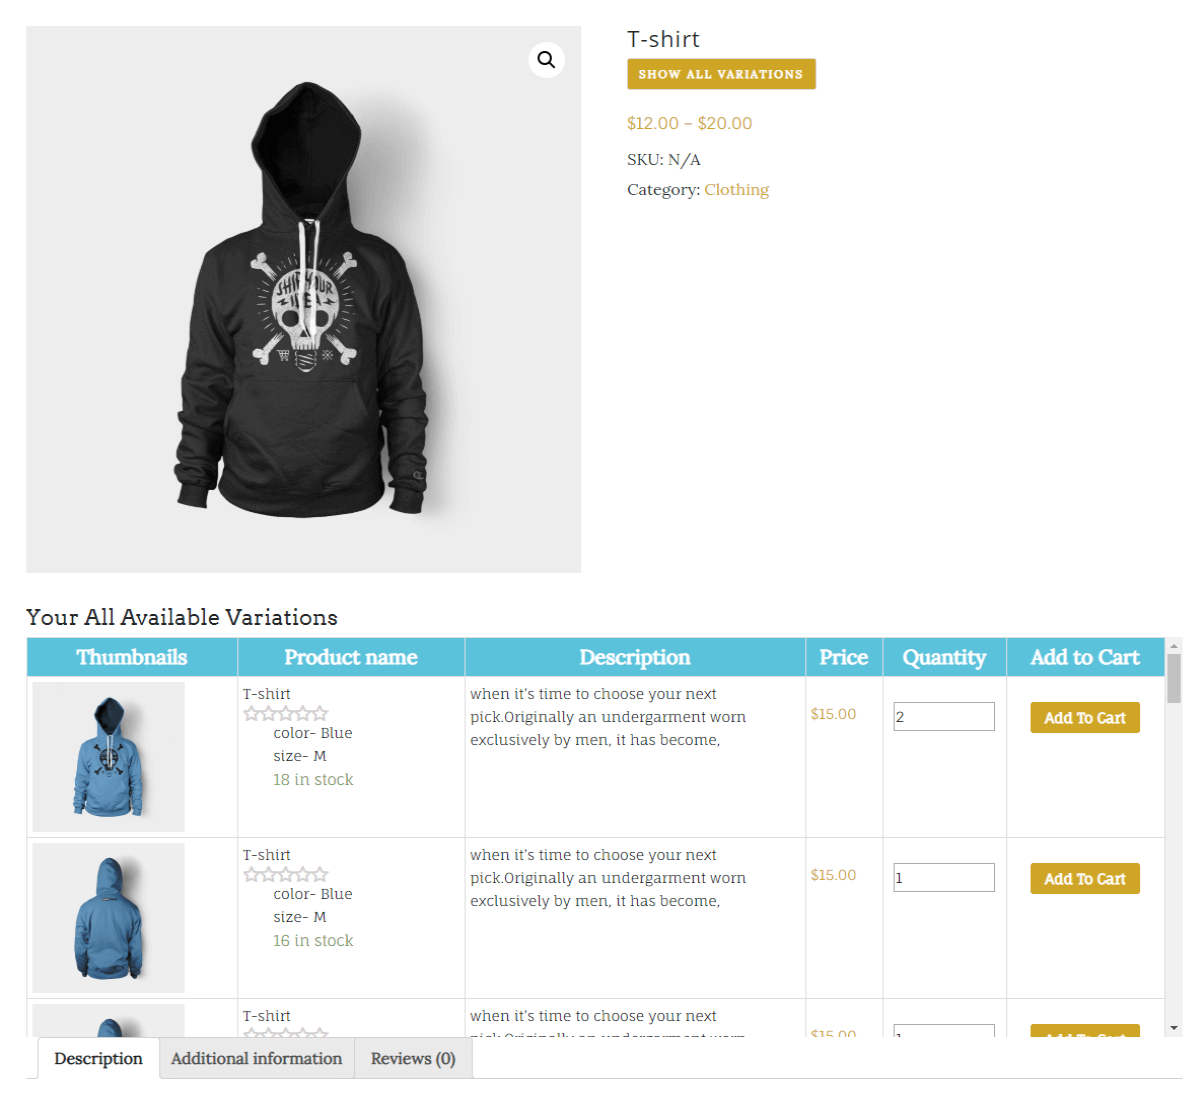 woocommerce-table-view-for-variations-table-enable-product-description